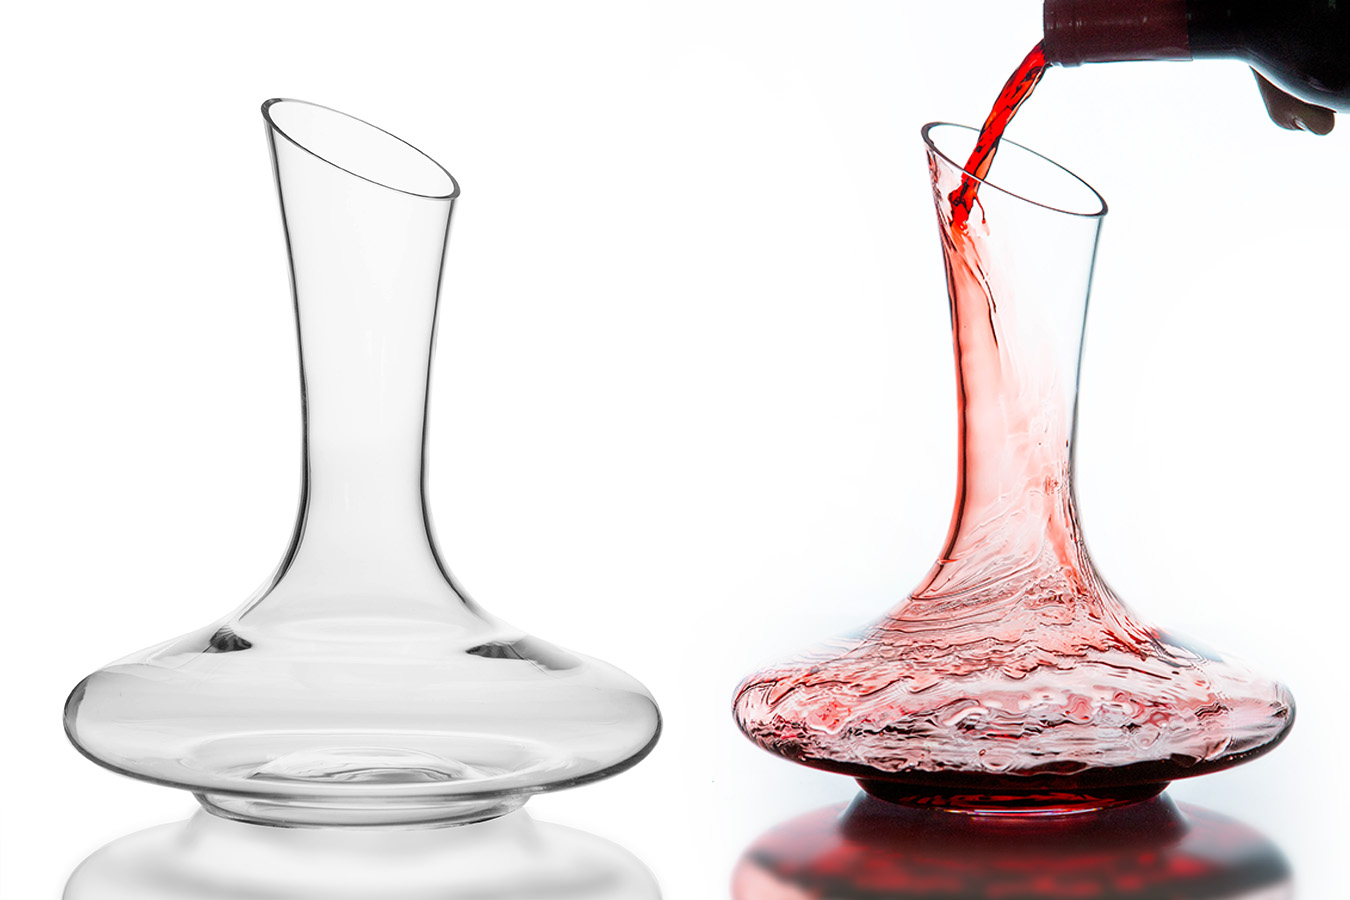 product photography of glass in austin texas